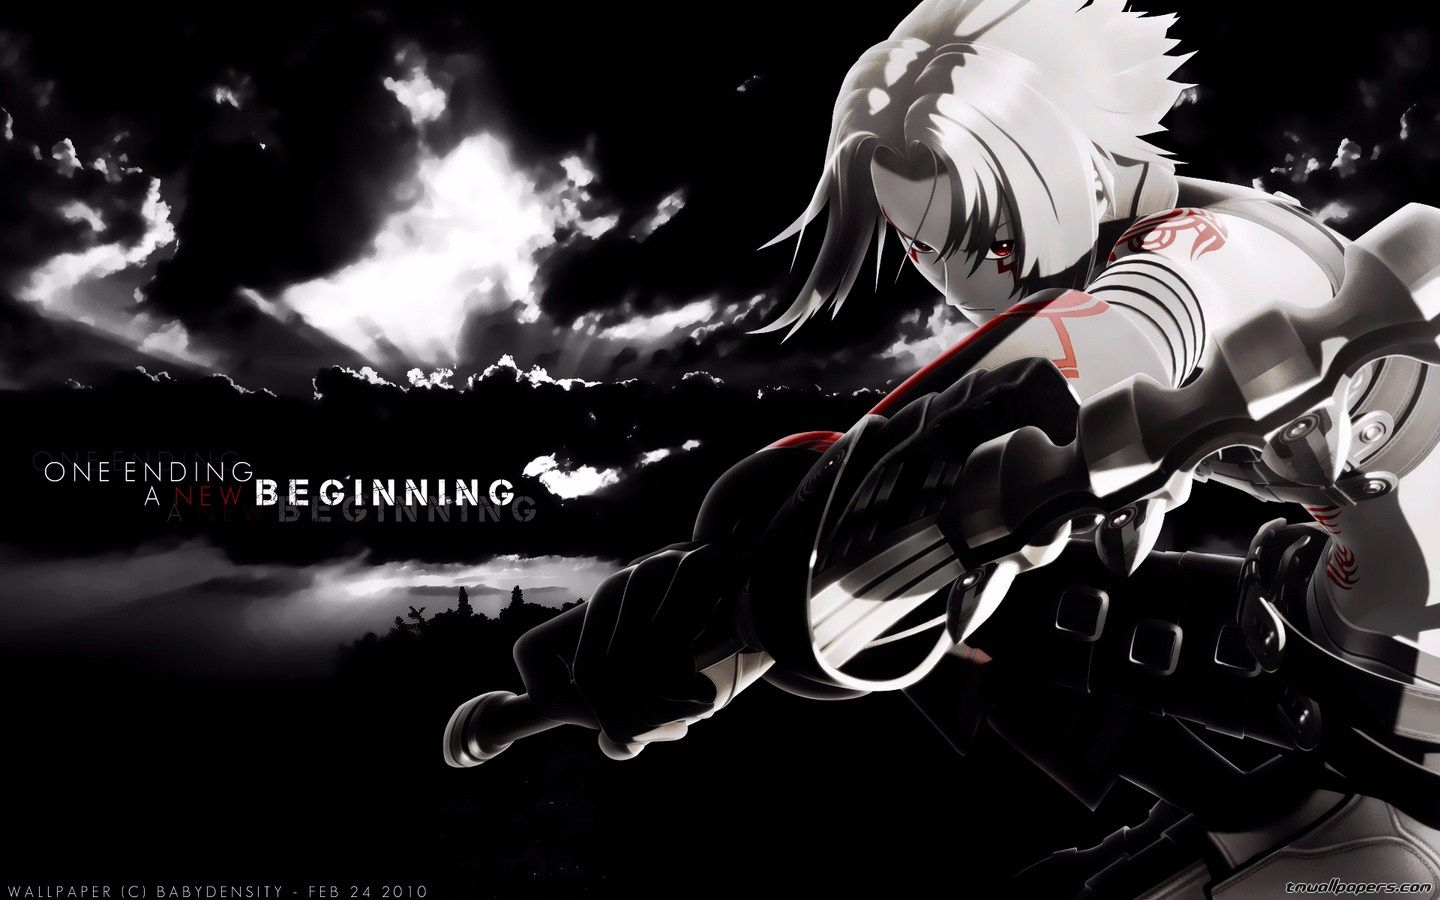 Download Guilty Crown Anime Wallpaper in x Resolution HD